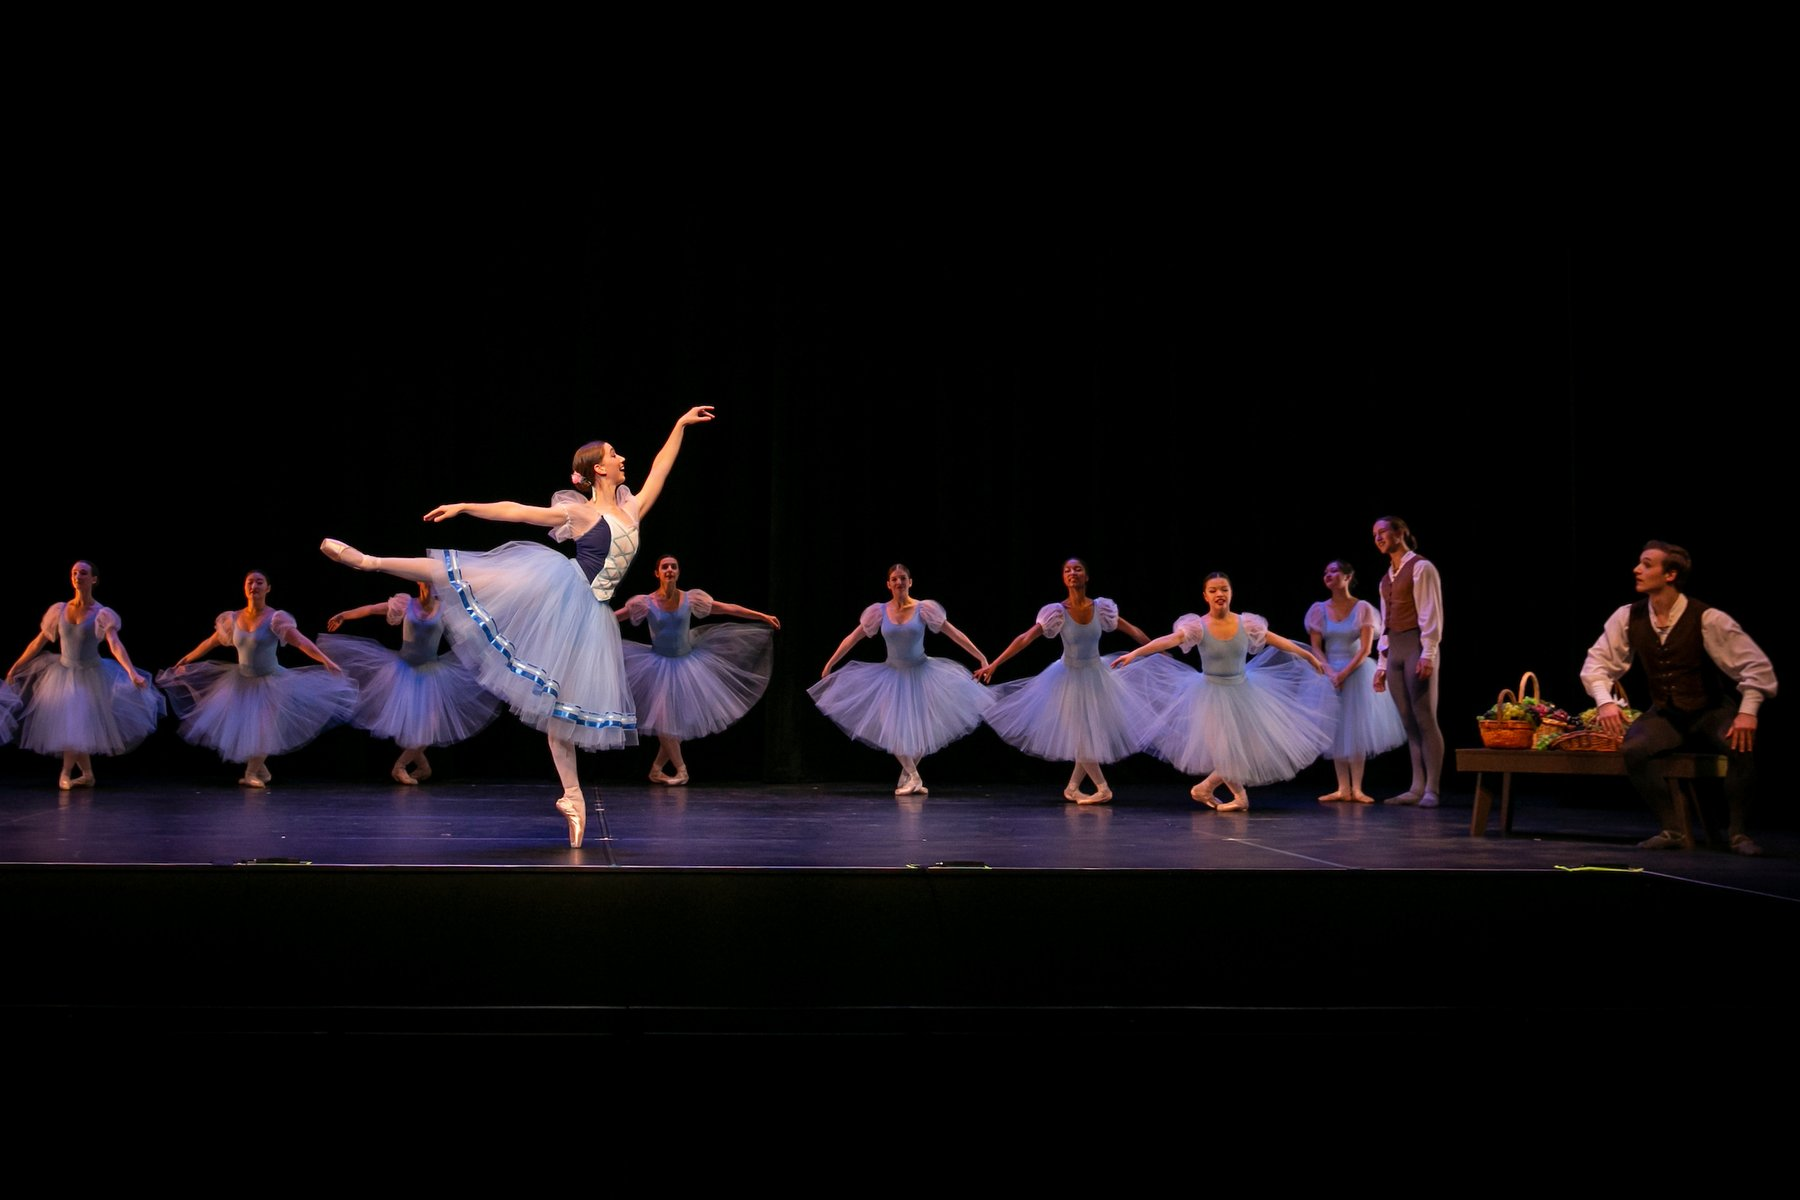 Students in Giselle (1841) by Jean Coralli and Jules Perrot, staged by Olivia Sabee, Fall Dance Concert 2018 (Sasha Fornari)